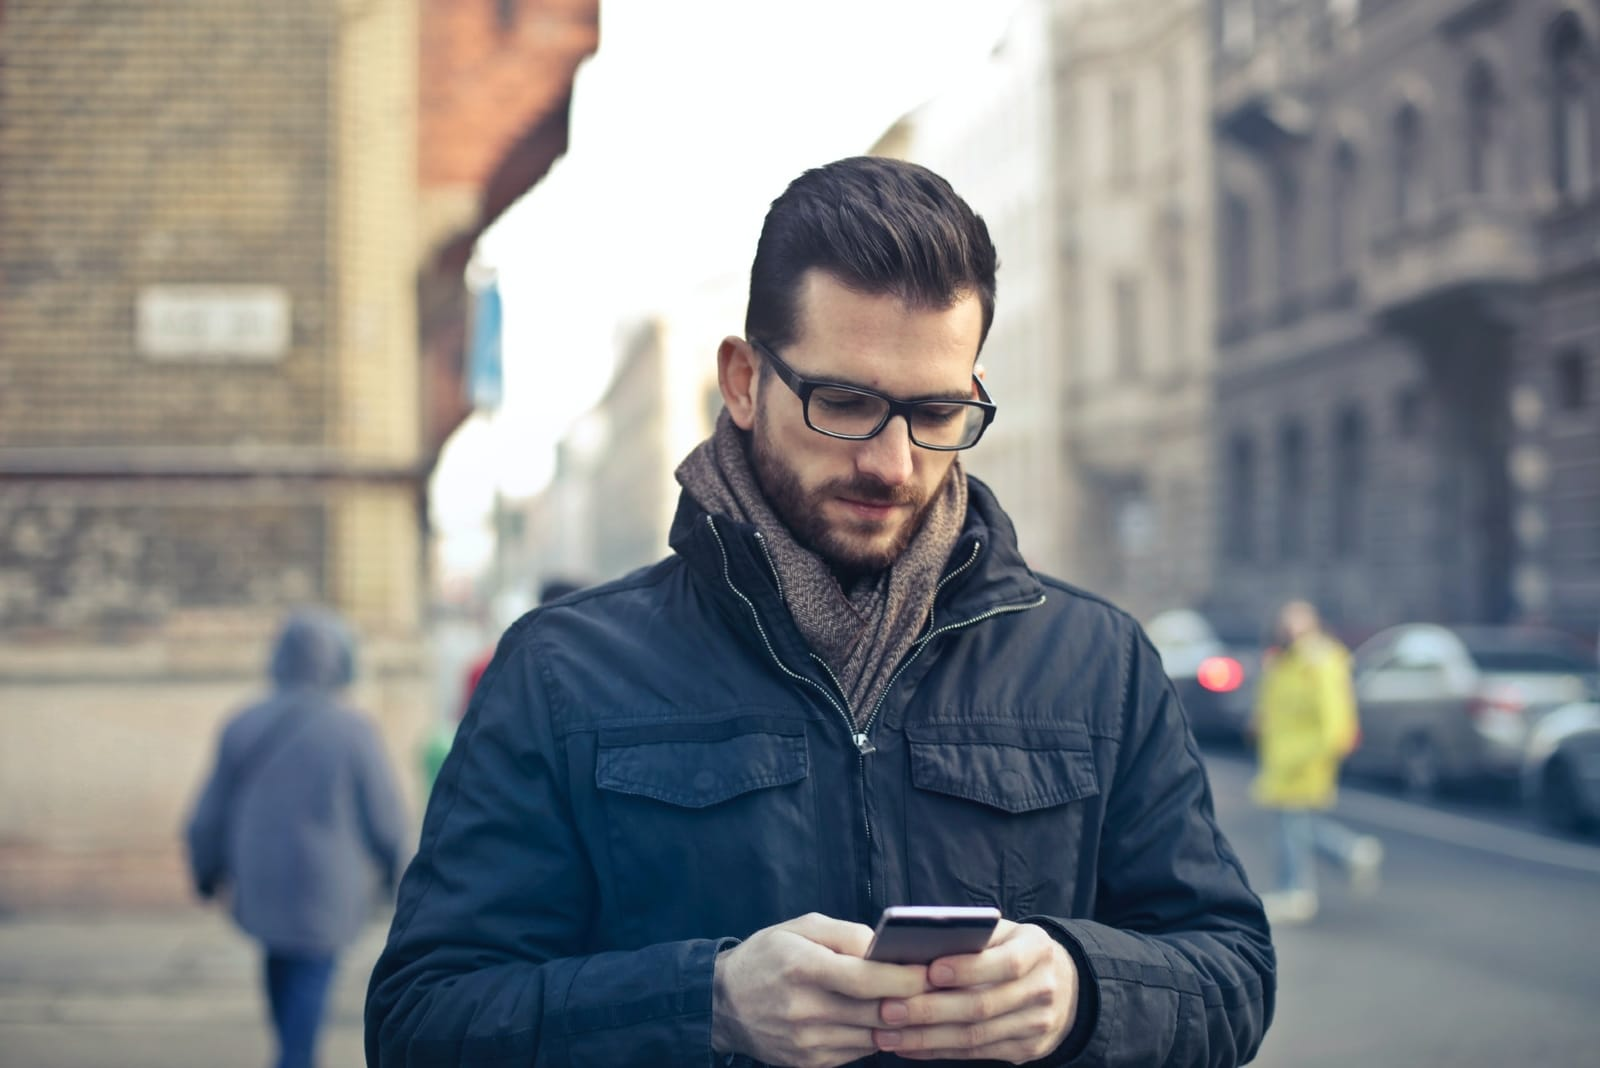 man with eyeglasses using smartphone